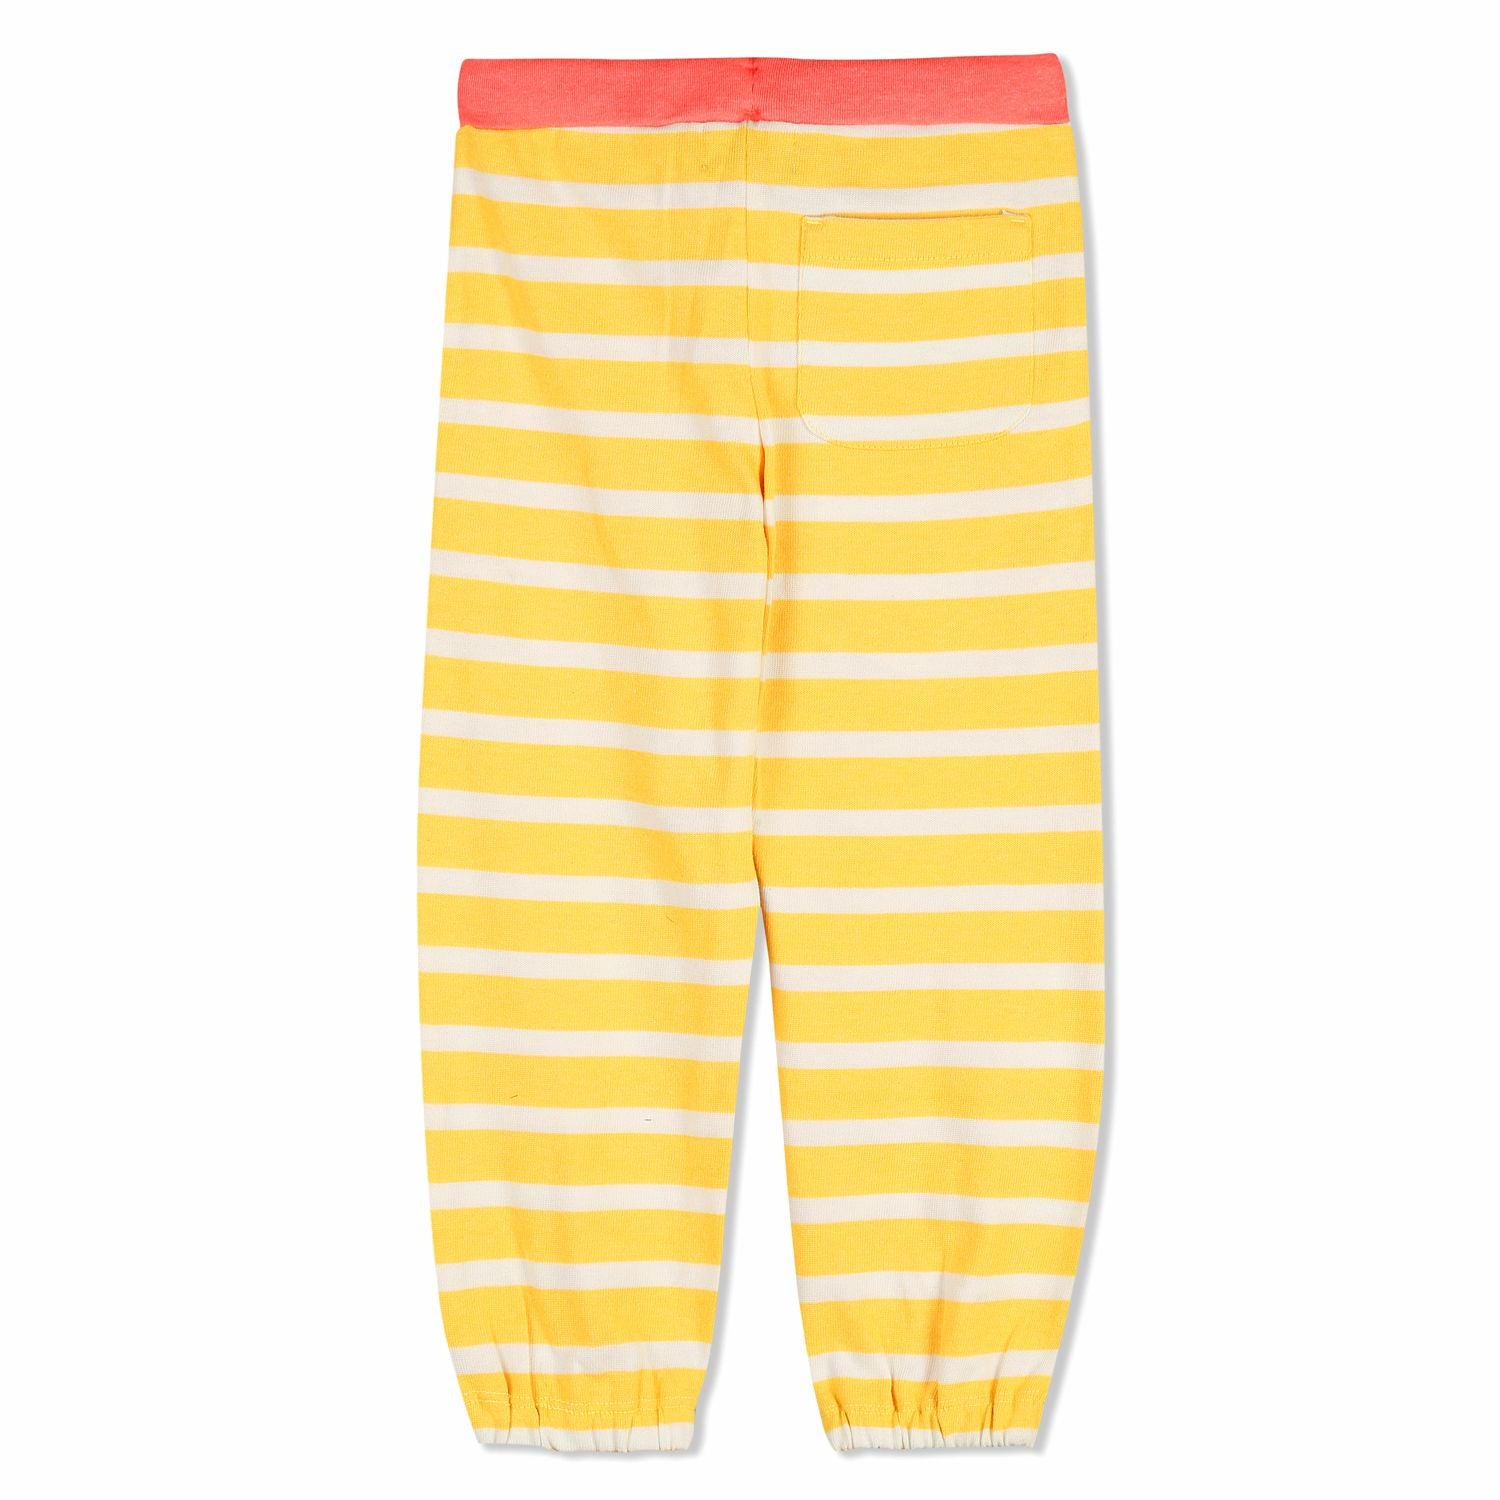 Dry Track Pants for kids